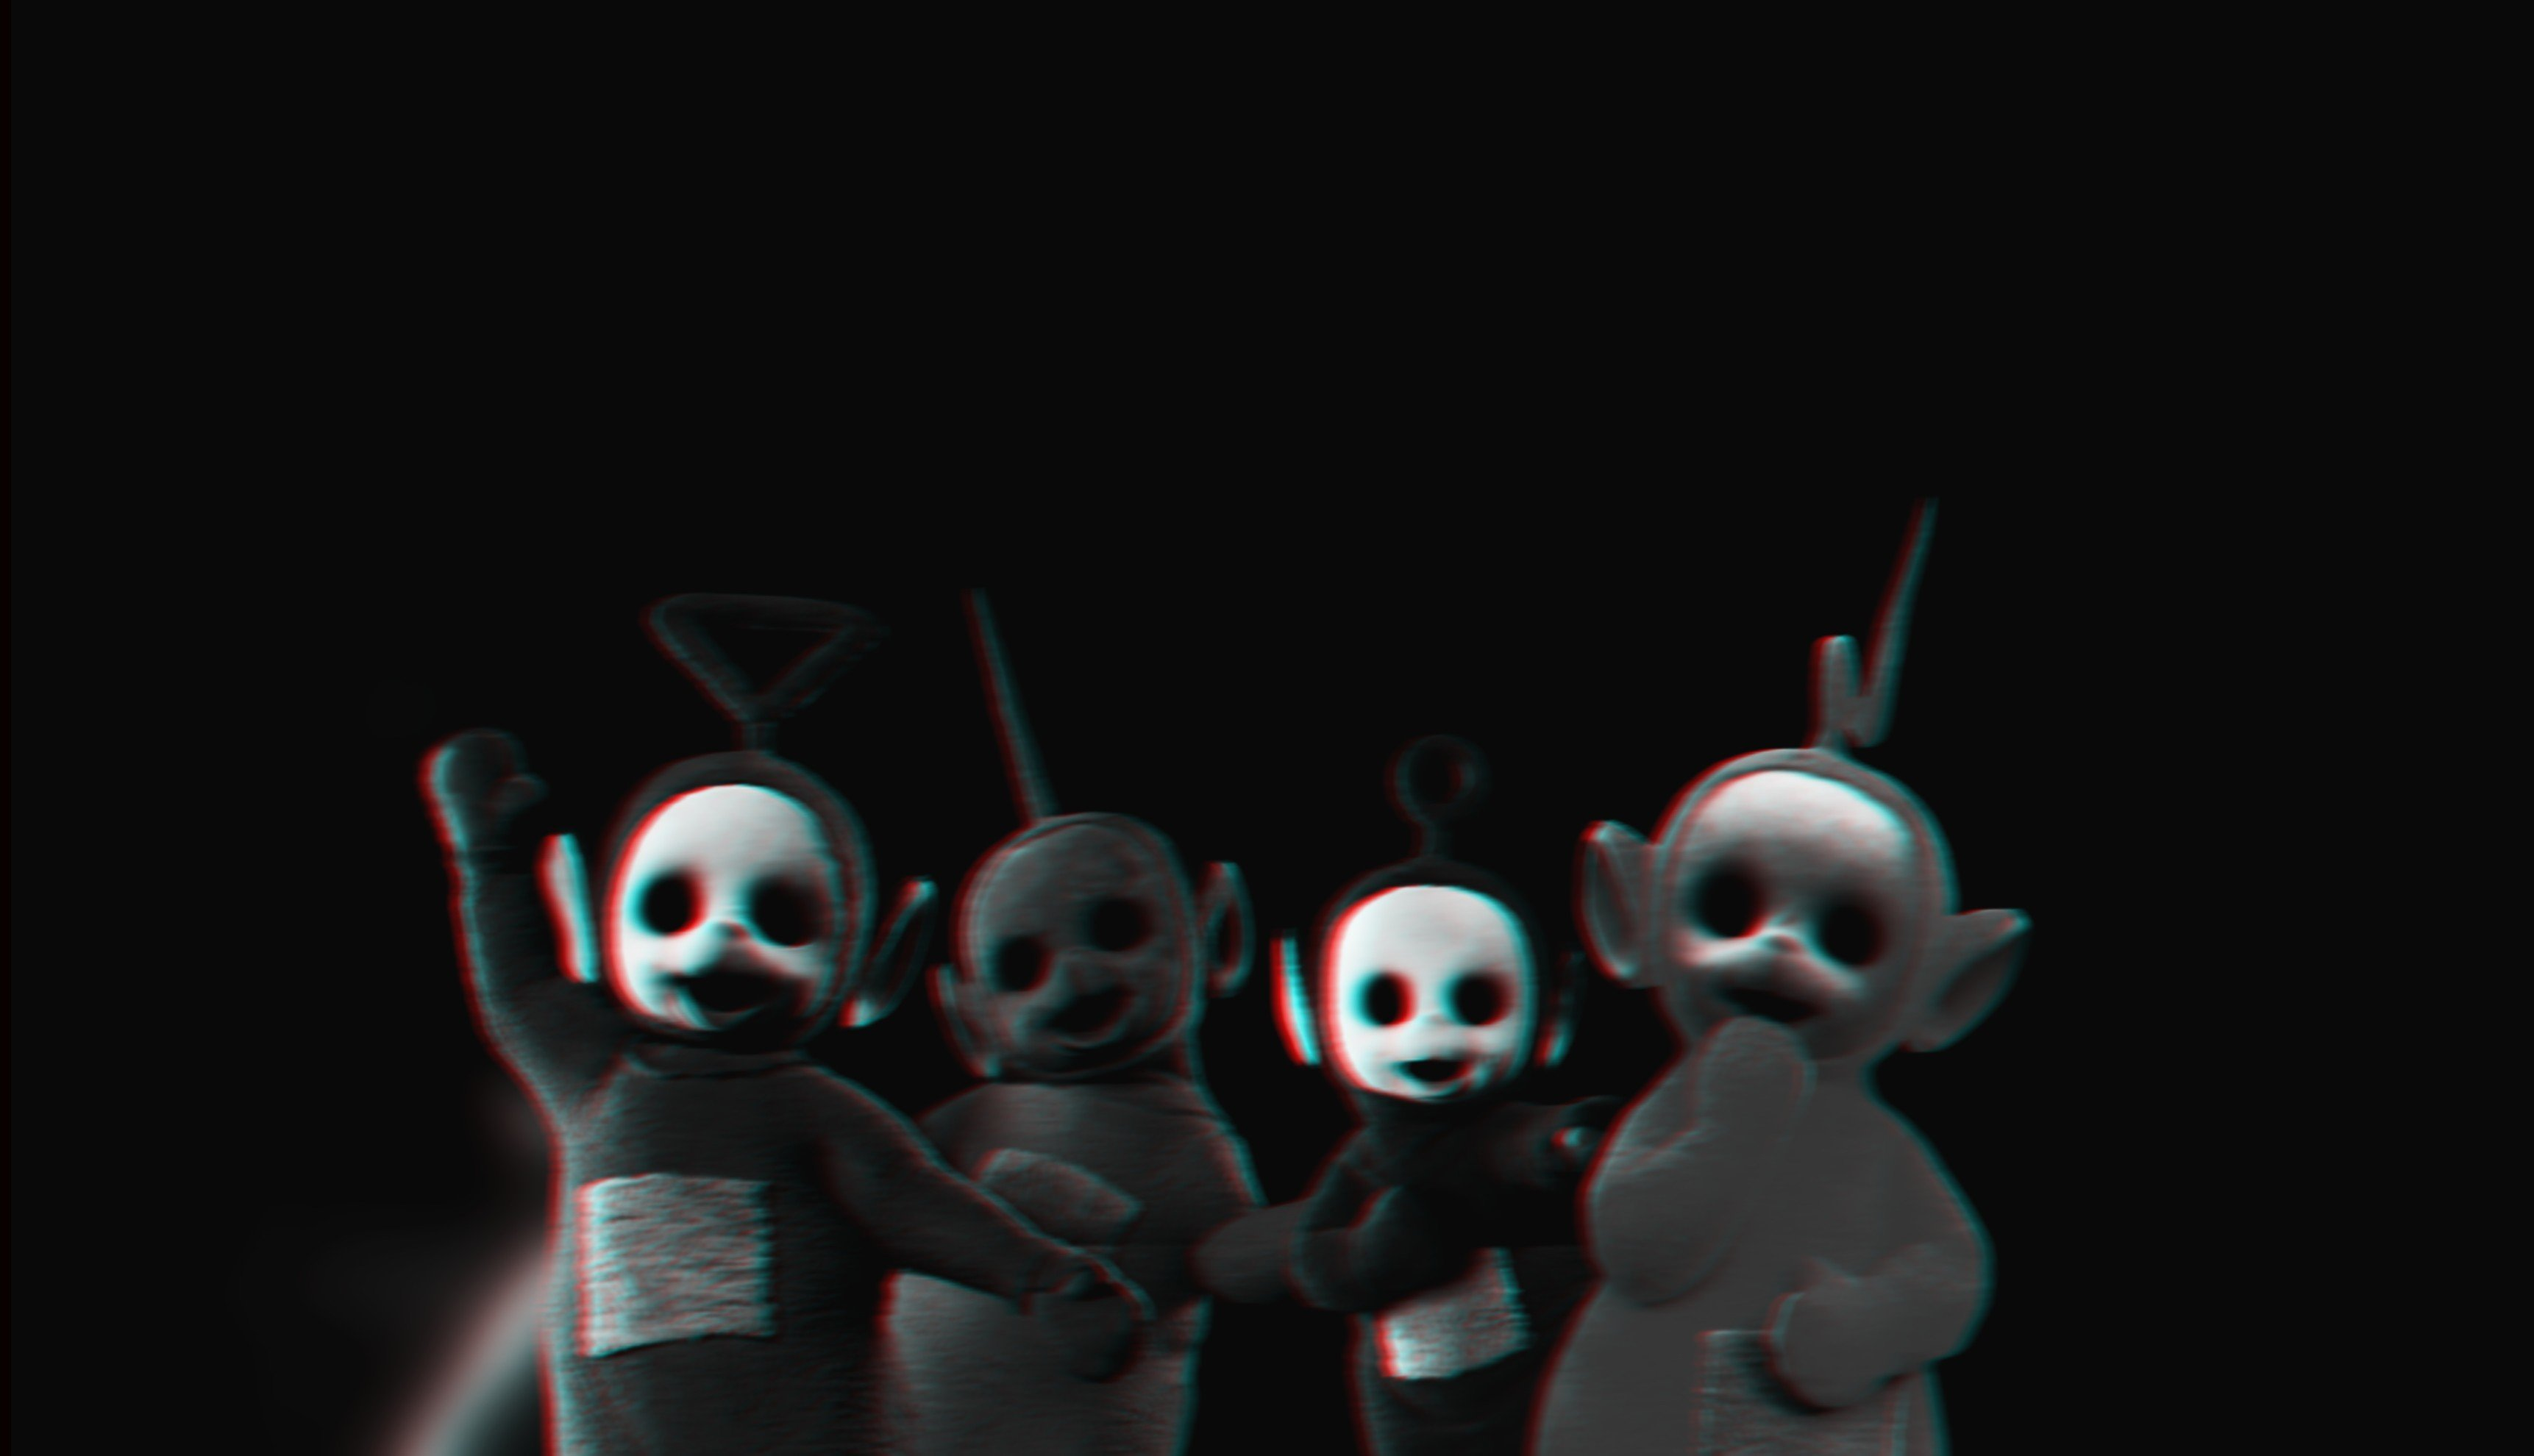 teletubbies horror hd wallpapers desktop and mobile